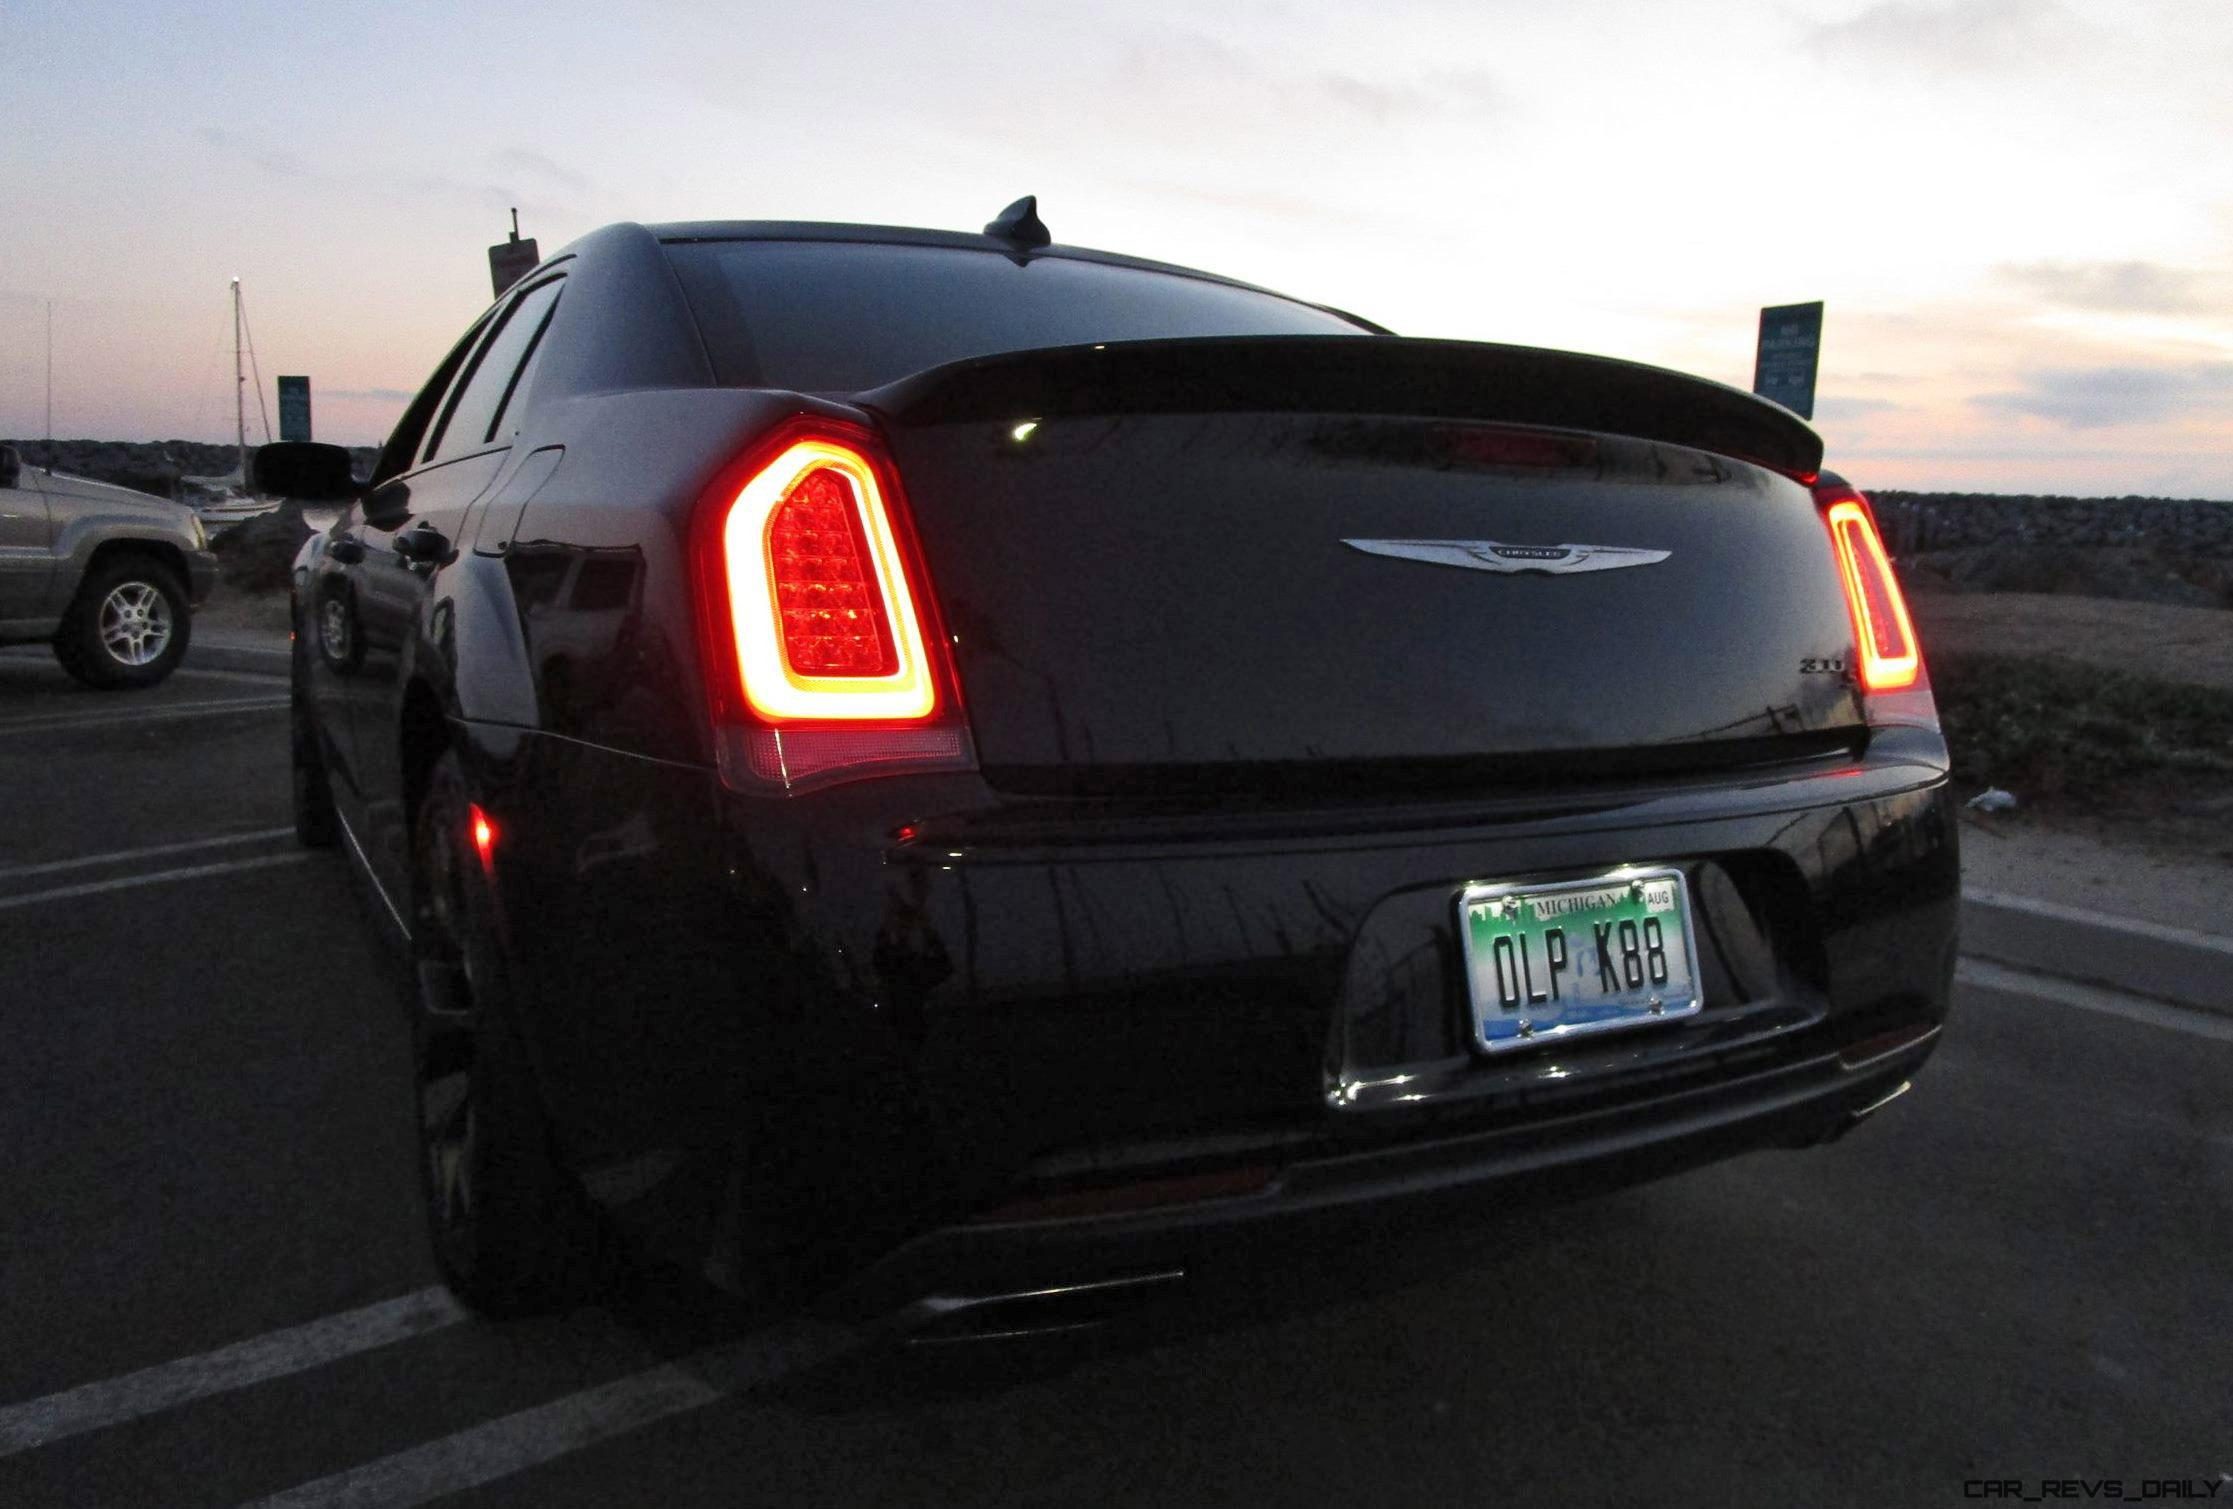 refreshed dressed the bling sideview in america up chrysler made new all is